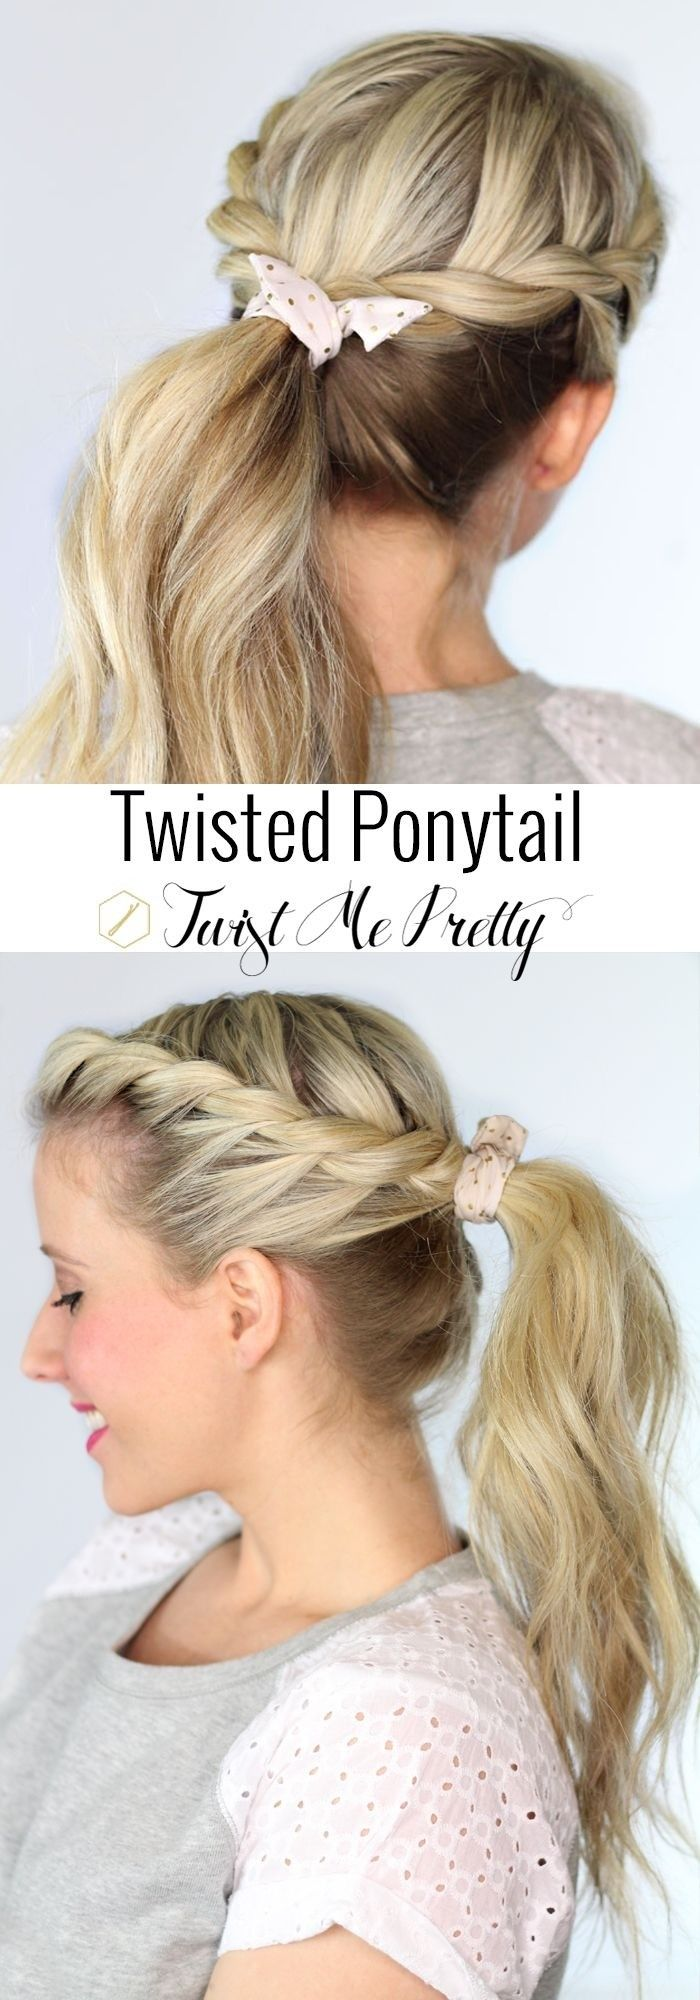 best images about simple hair up dos on pinterest chignons